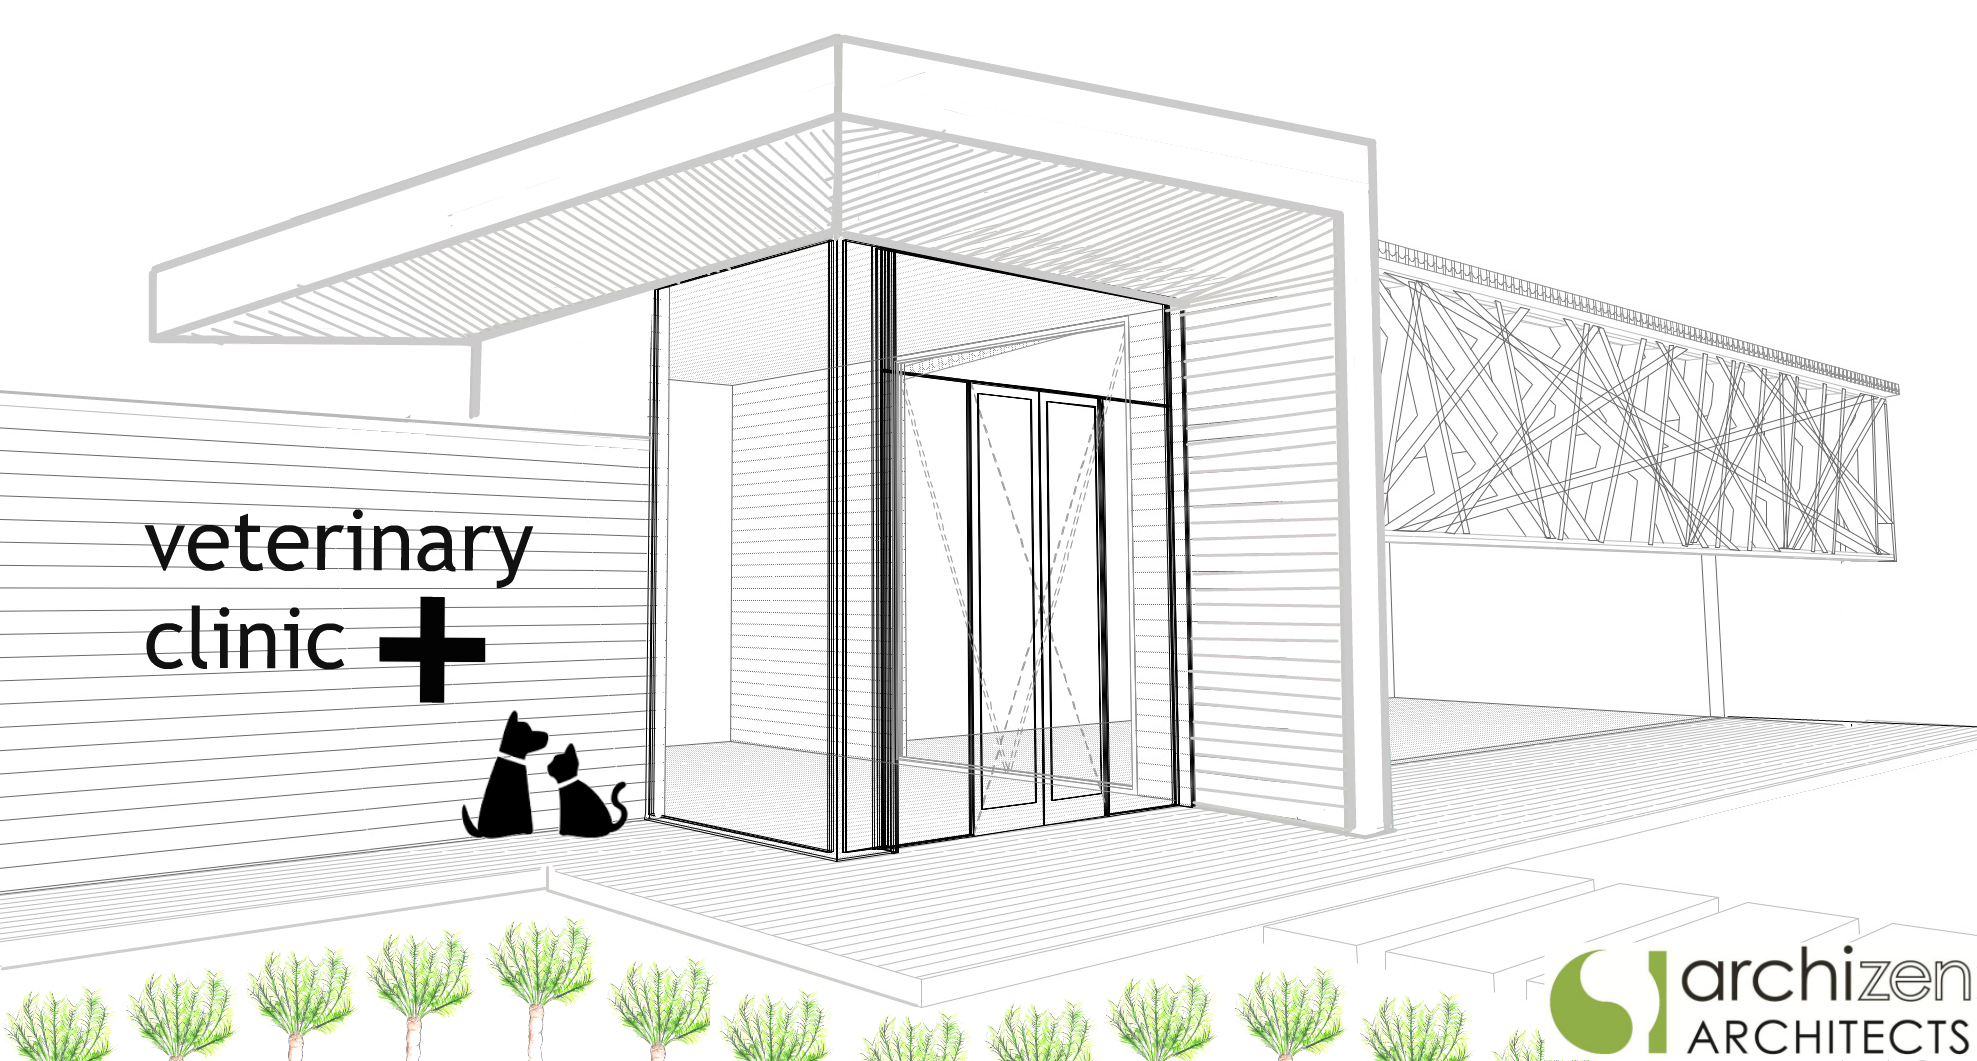 Archizen Architects Veterinary Clinic Animal Hospital Boarding Kennels Pet Hotels Architectural Design Sydney Melbourne Brisbane Perth Auckland Wellington Christchurch Australia NZ.jpg